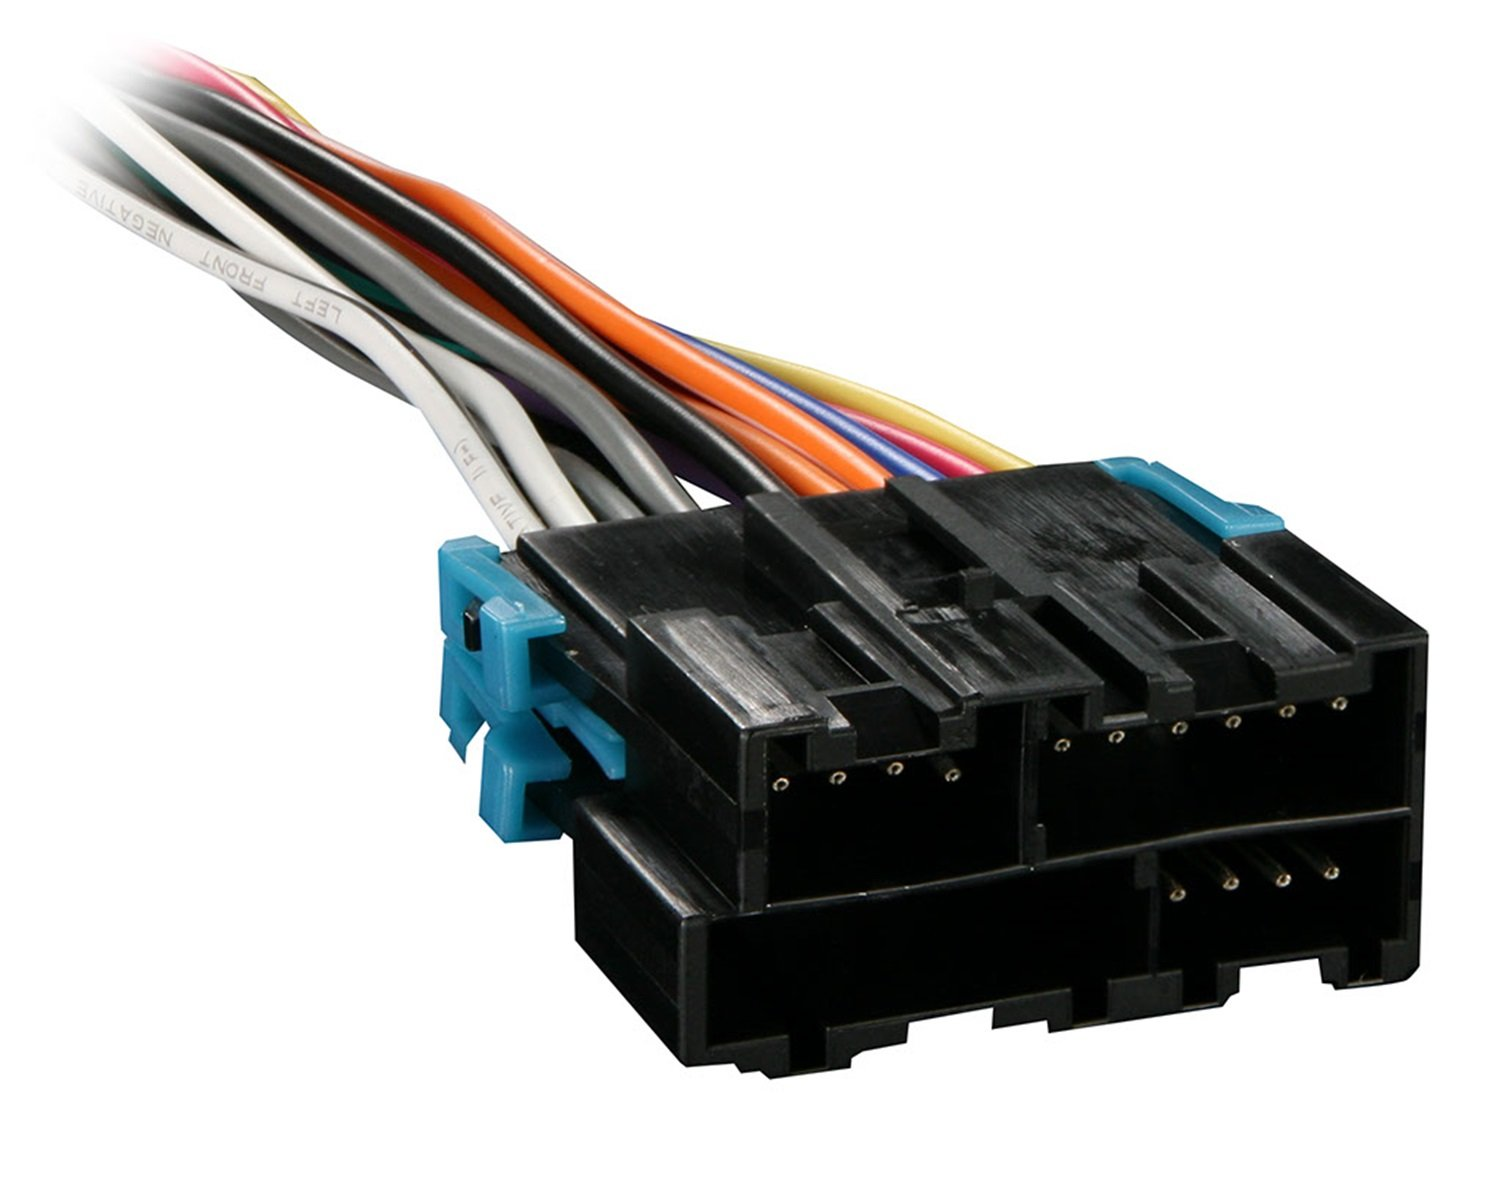 61 CwjZt1hL._SL1500_ radio wiring harnesses amazon com Delco Radio Wiring Color Codes at edmiracle.co